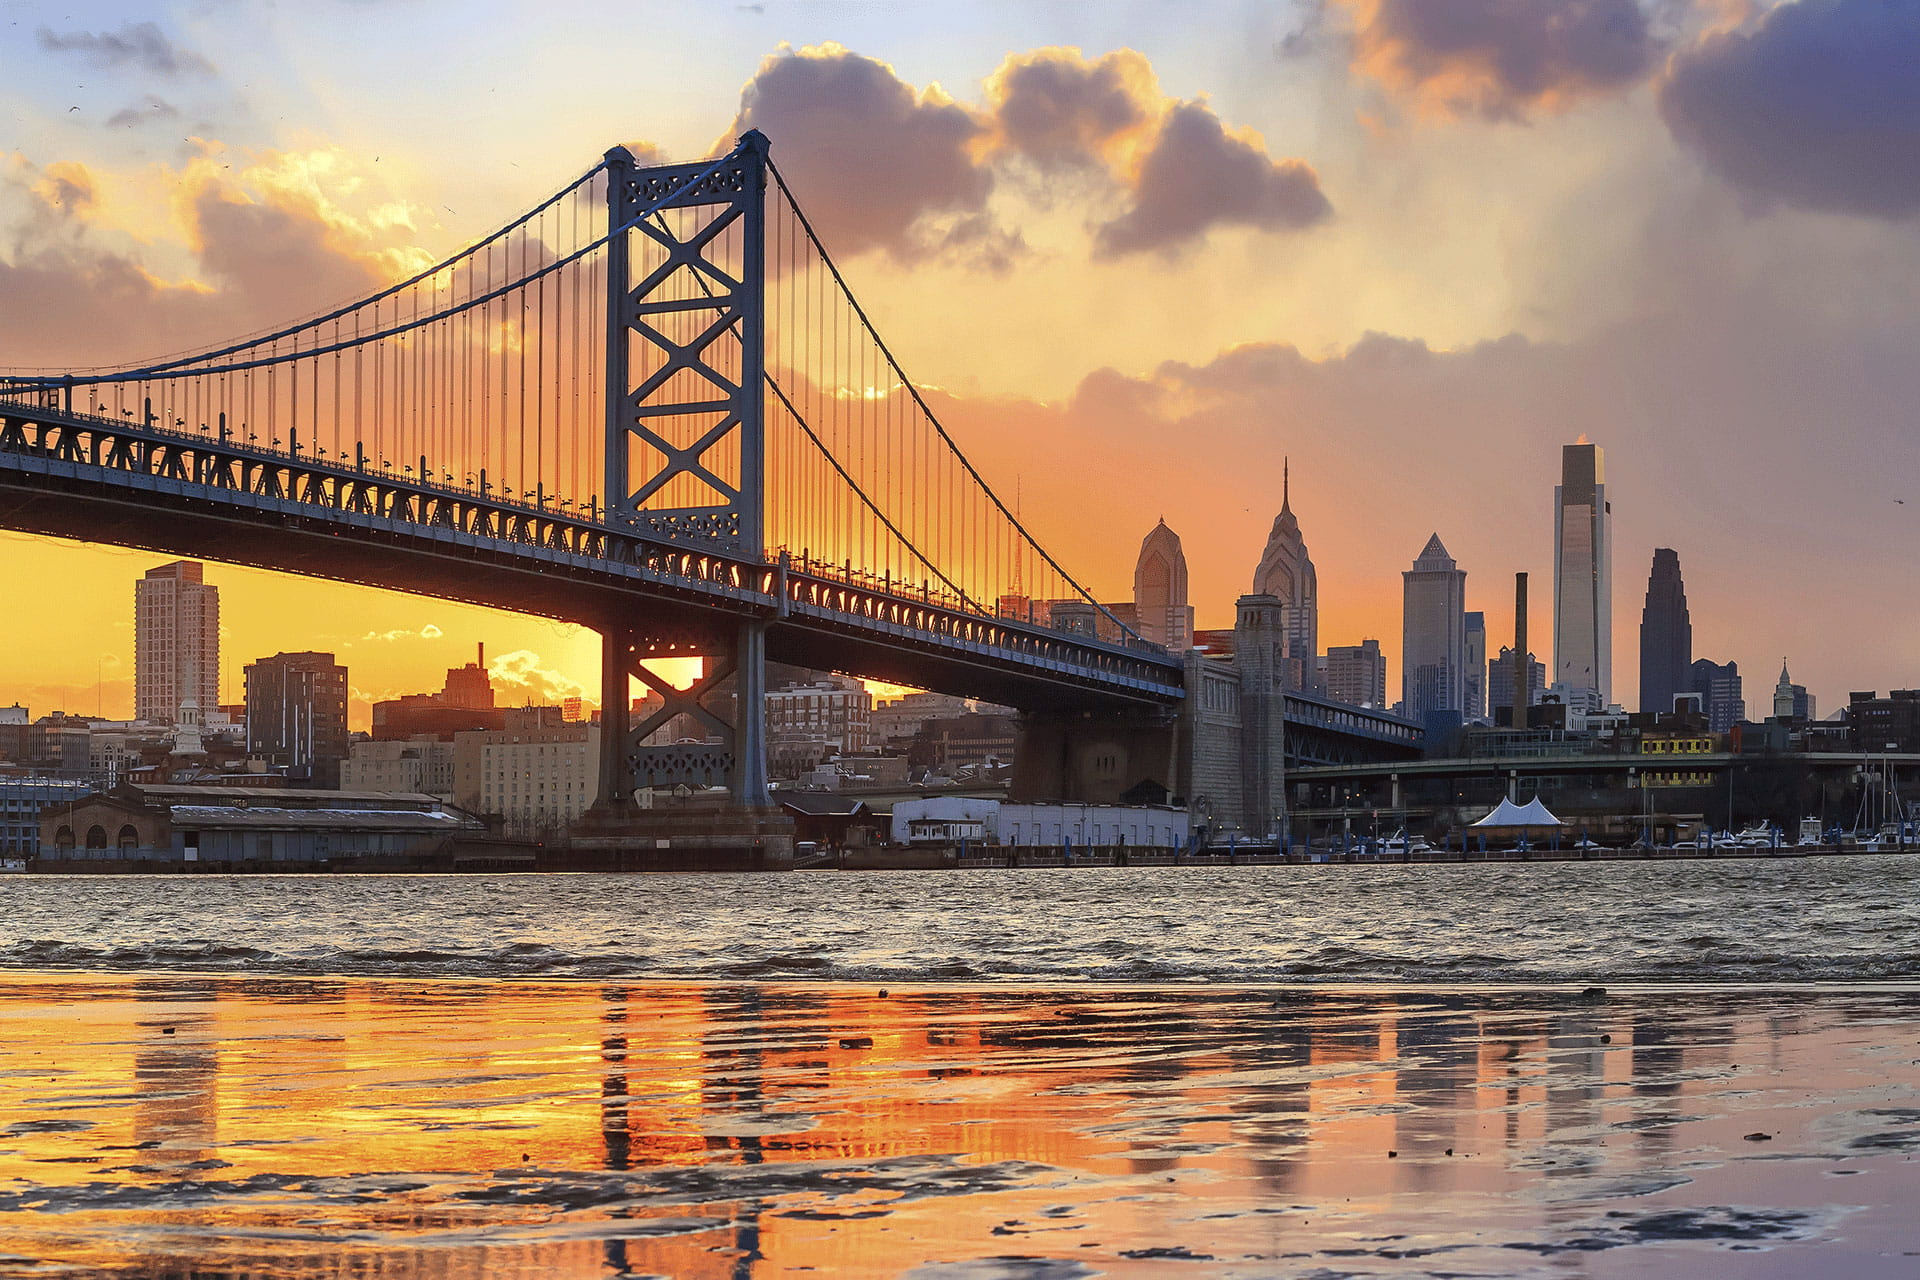 Ben Franklin Bridge with Philadelphia Skyline at Sunset